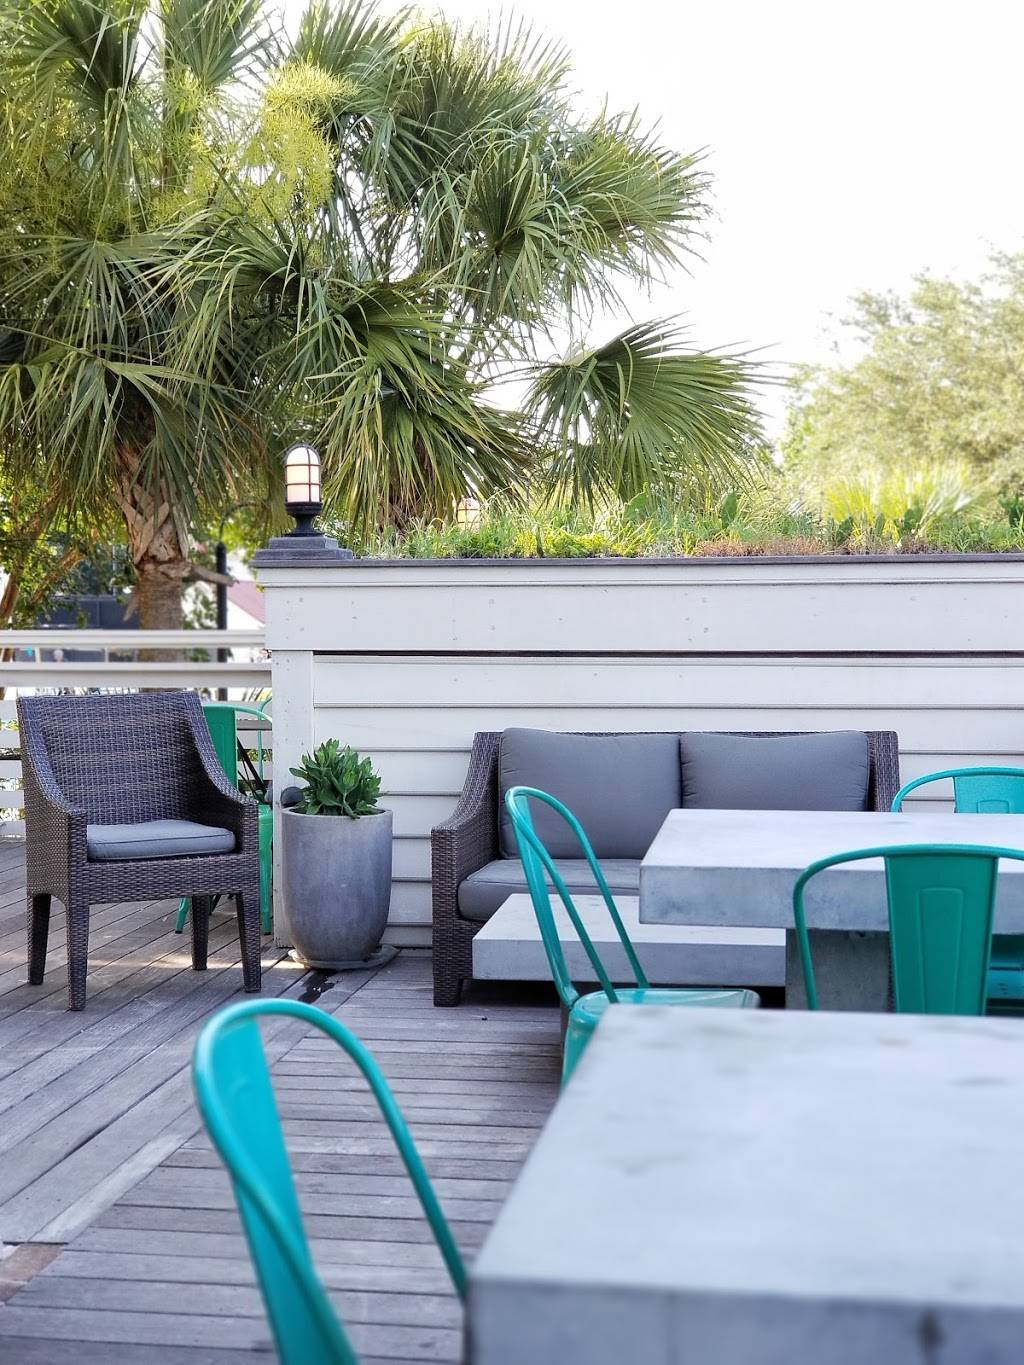 The Porch at IOn | restaurant | 252 Ponsbury Rd, Mt Pleasant, SC 29464, USA | 8439717834 OR +1 843-971-7834